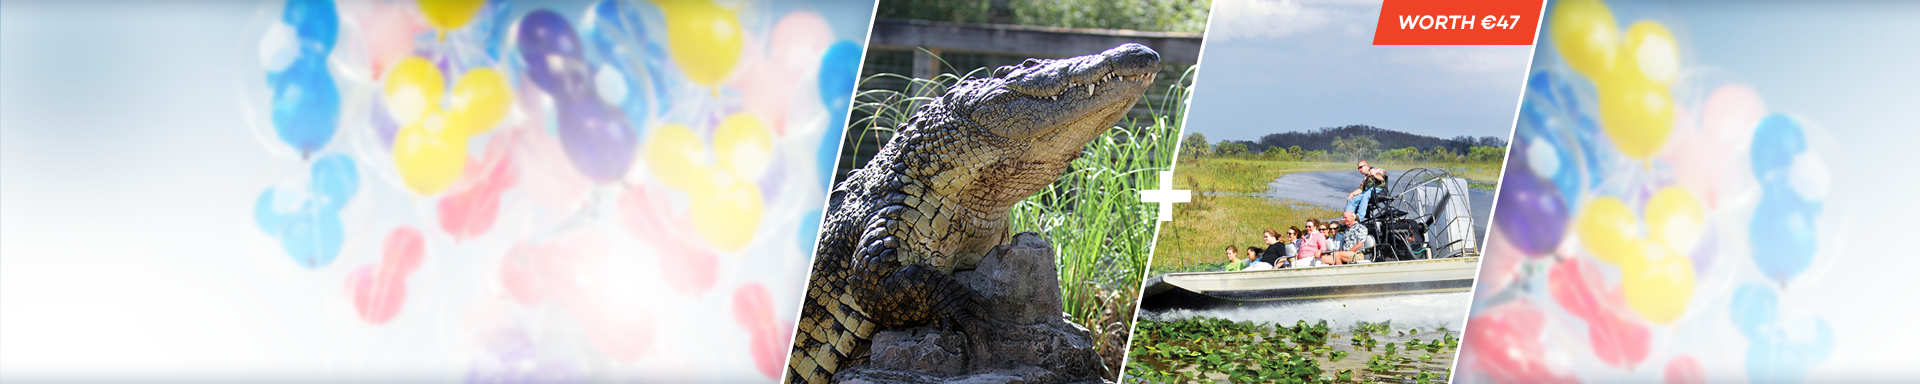 Experience 2 Amazing Orlando Attractions on Us!